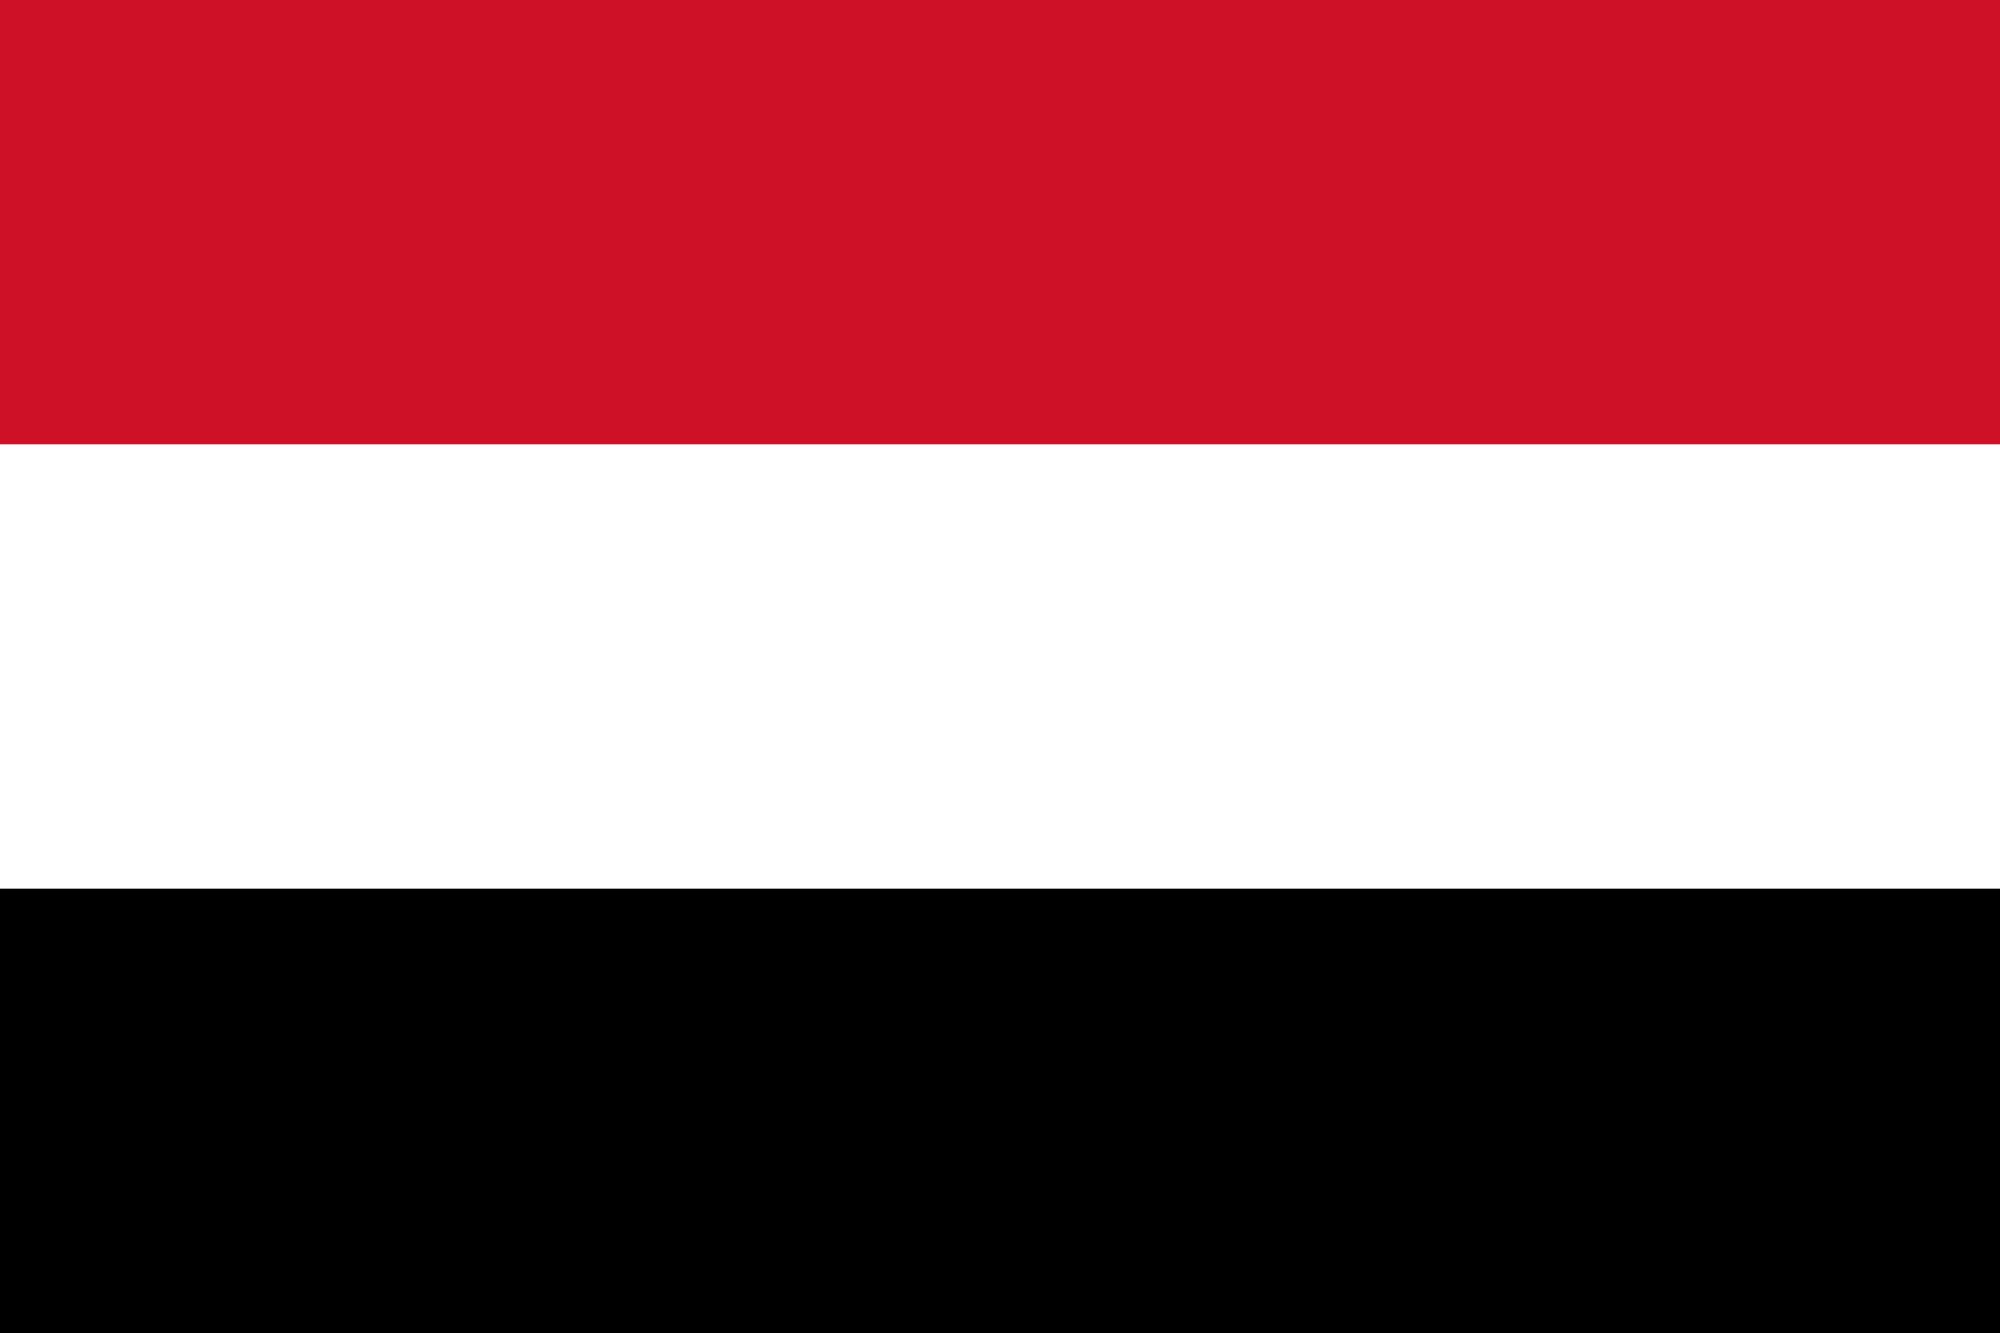 Yemen Flag and Description